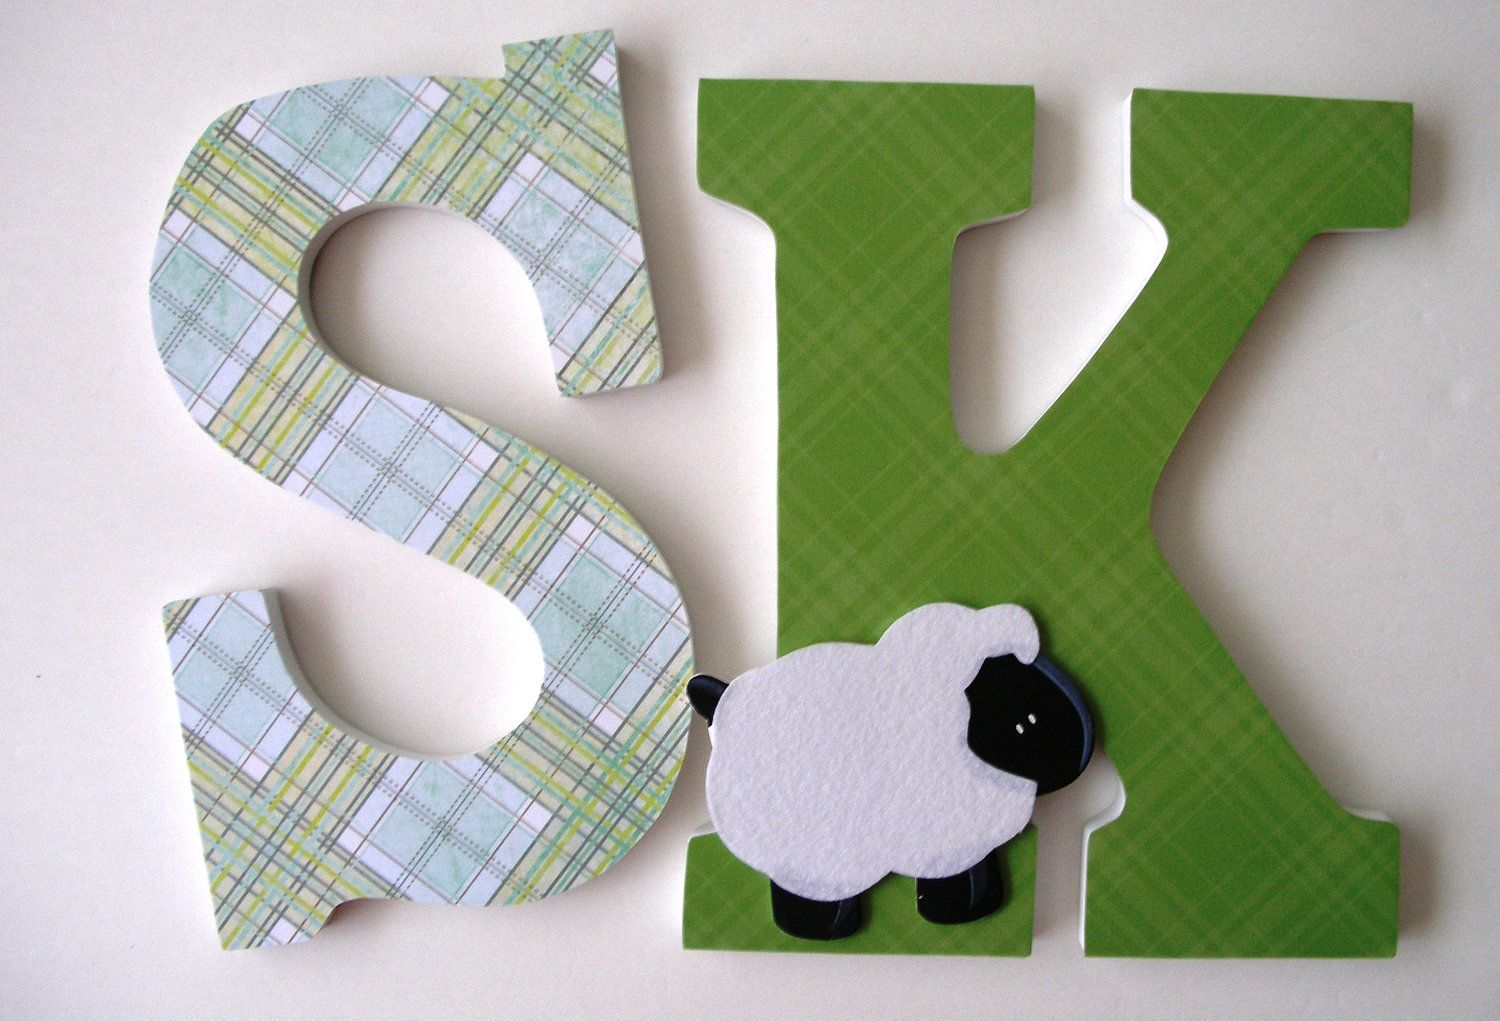 Custom Decorated Wooden Letters LAMB Theme - Nursery Bedroom Home Décor, Wall Decorations, Wood Letters, Personalized Sheep. $20.00, via Etsy.